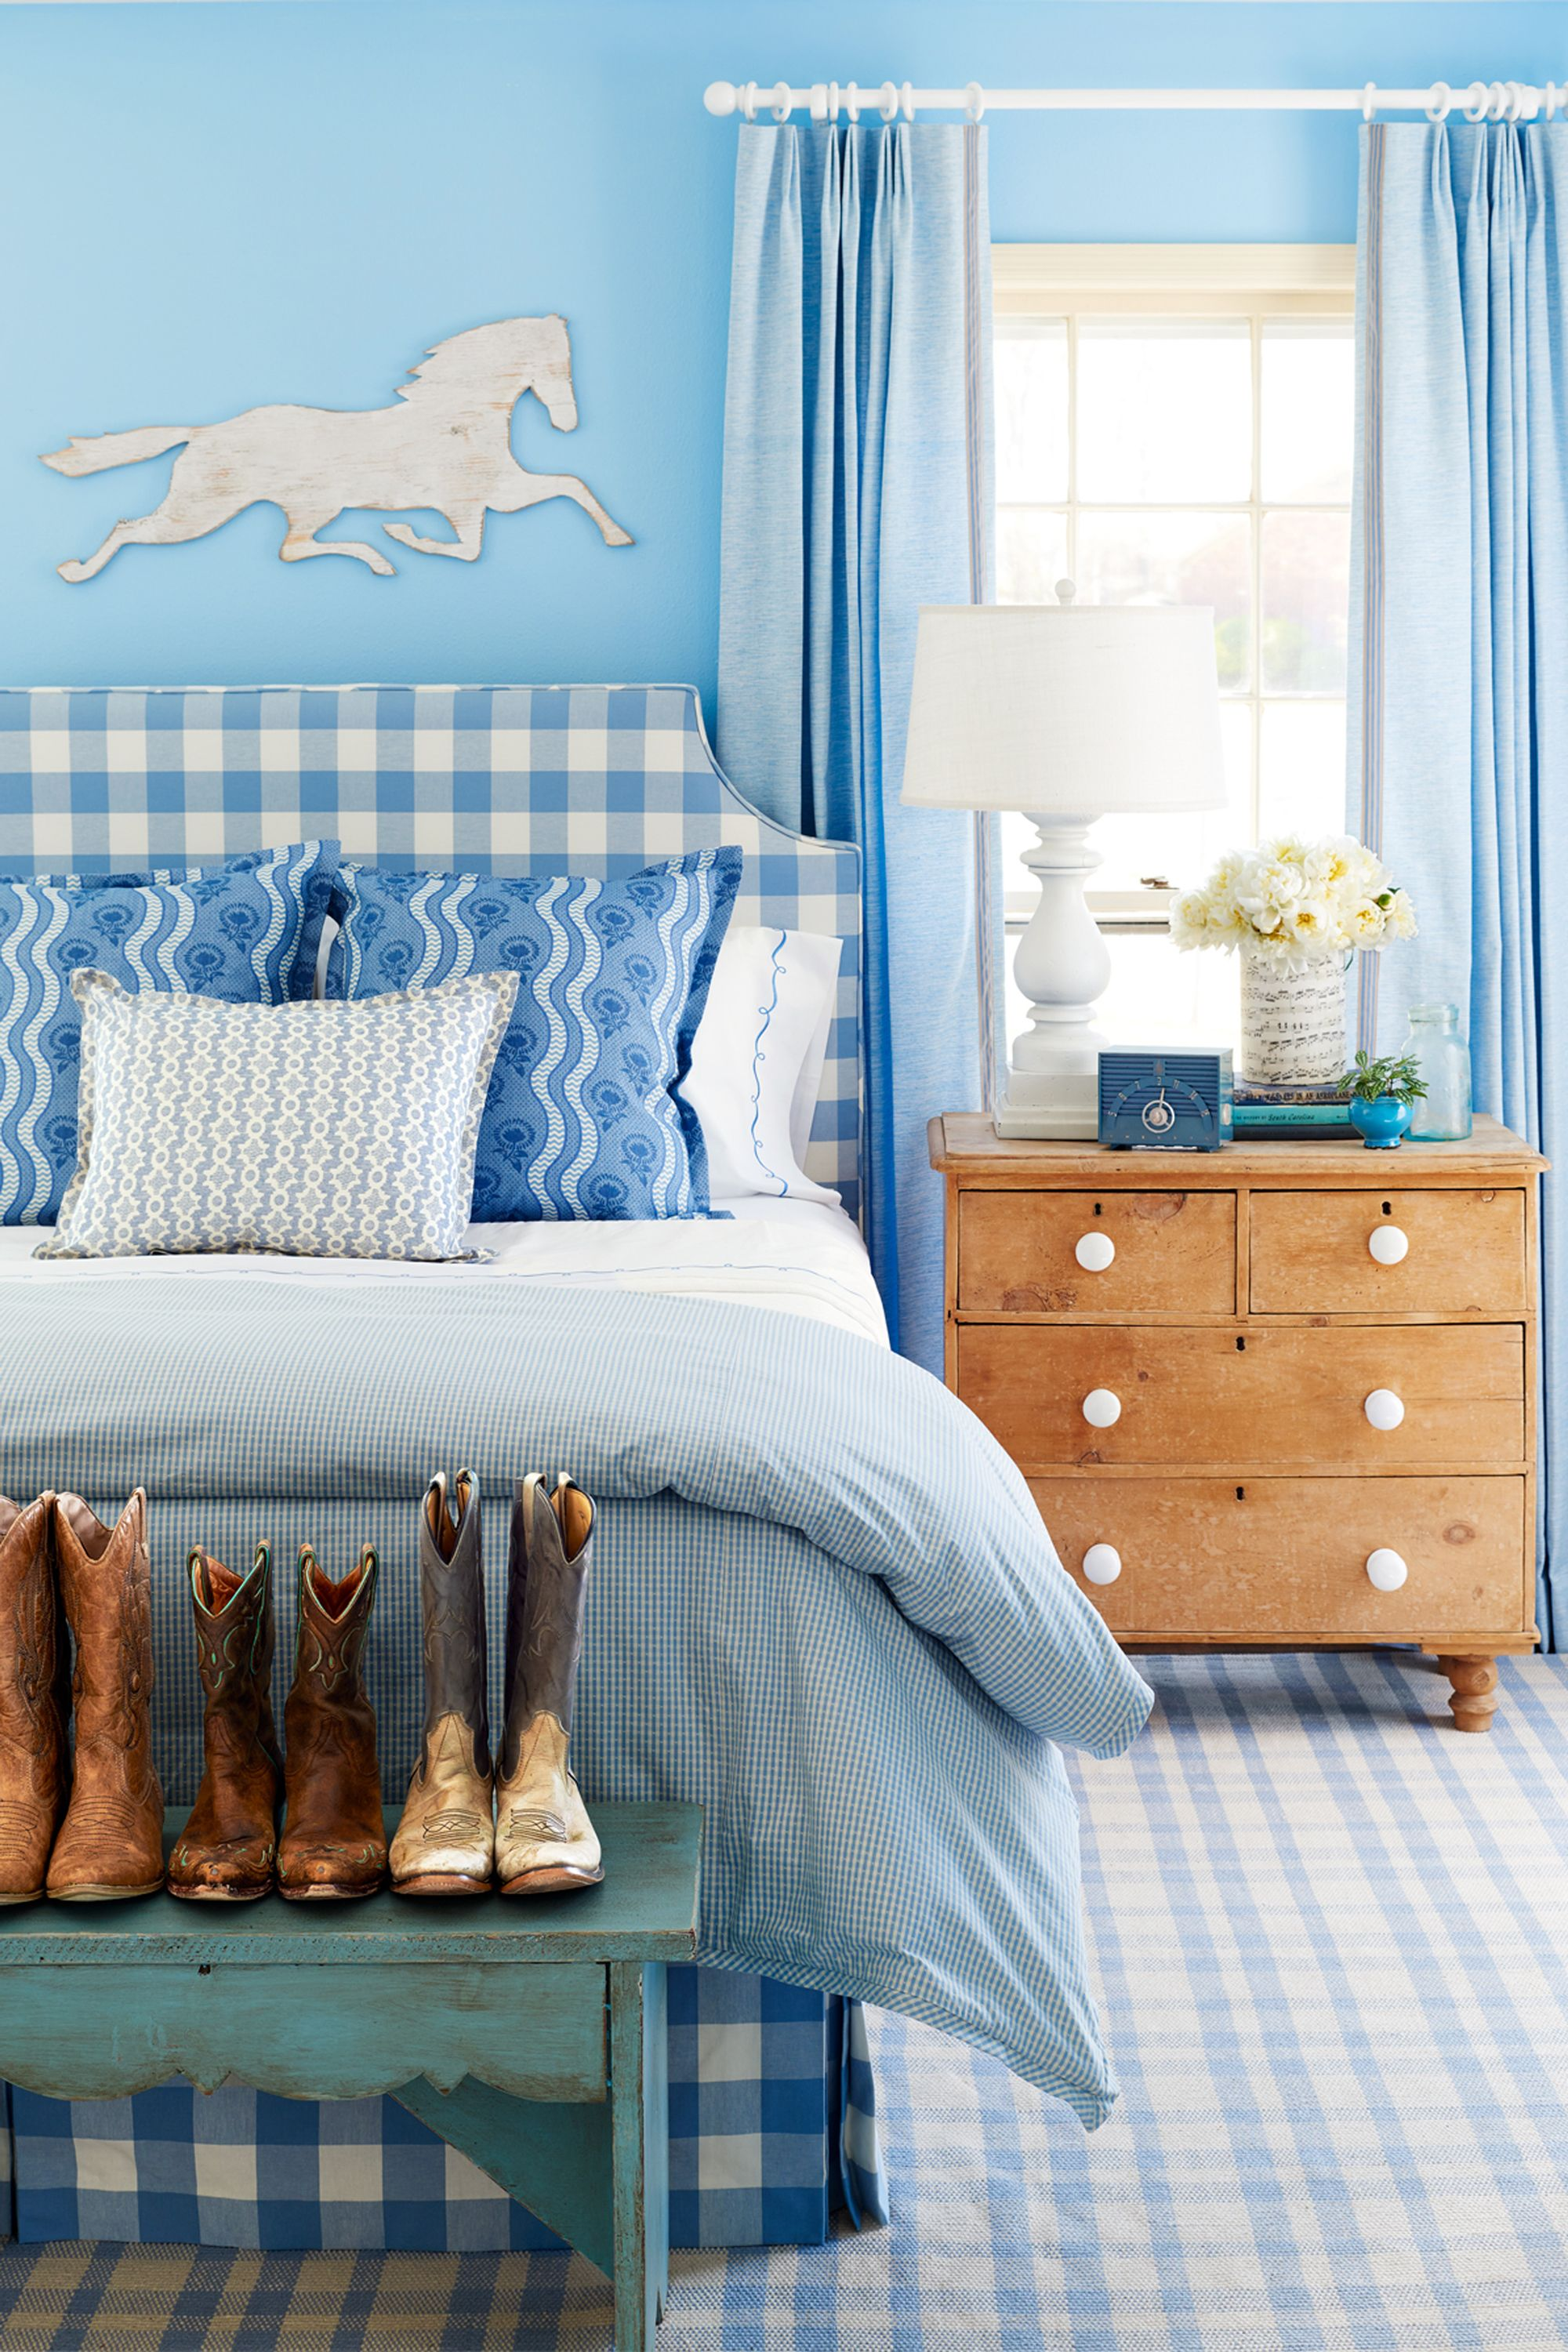 Teal Pictures Bedroom 25 Best Blue Rooms Decorating Ideas For Blue Walls And Home Decor